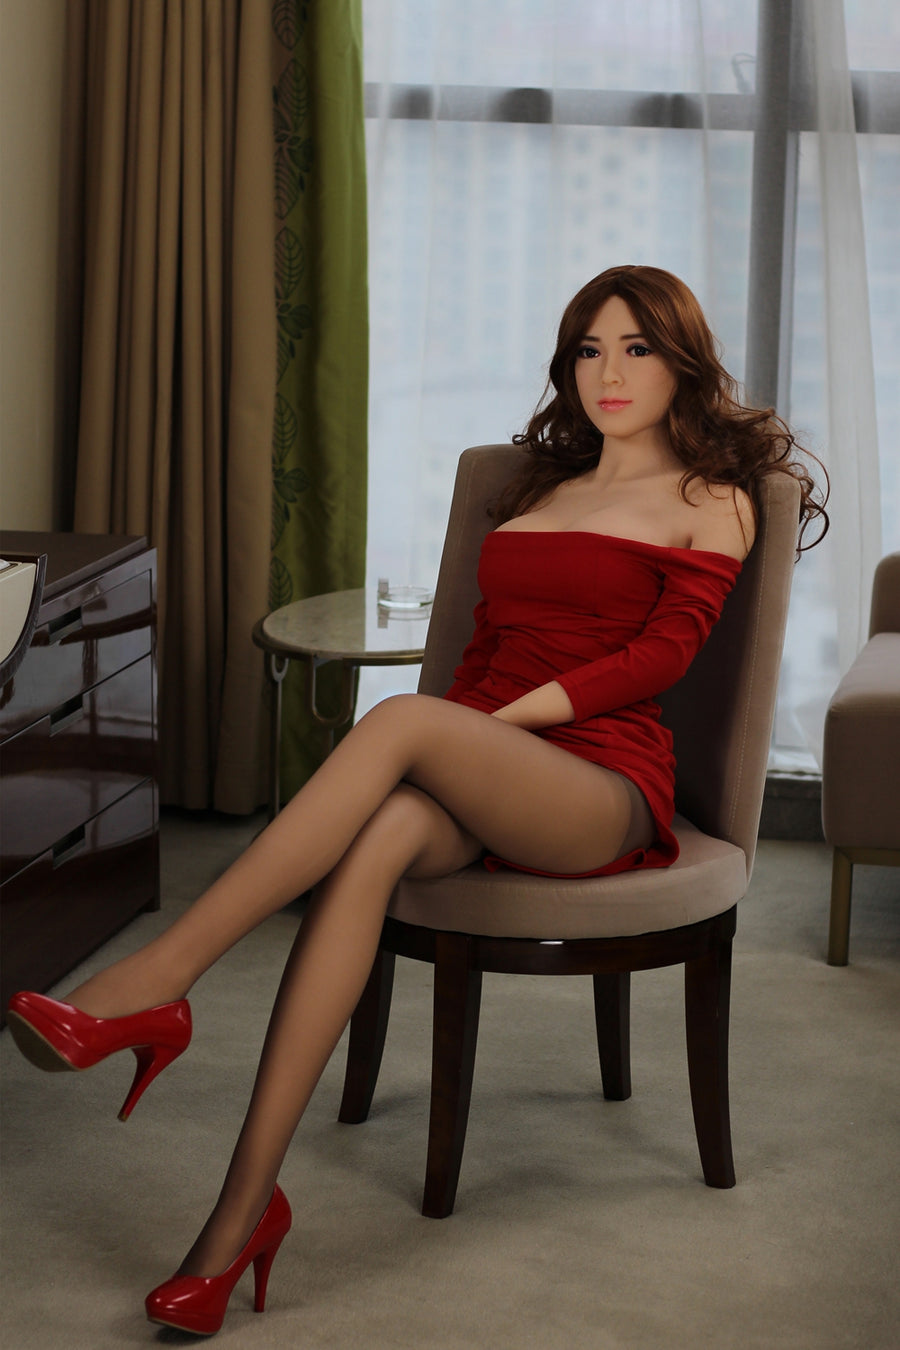 Dana - Blonde busty sex doll in red sexy dress 5ft 5 (165cm)